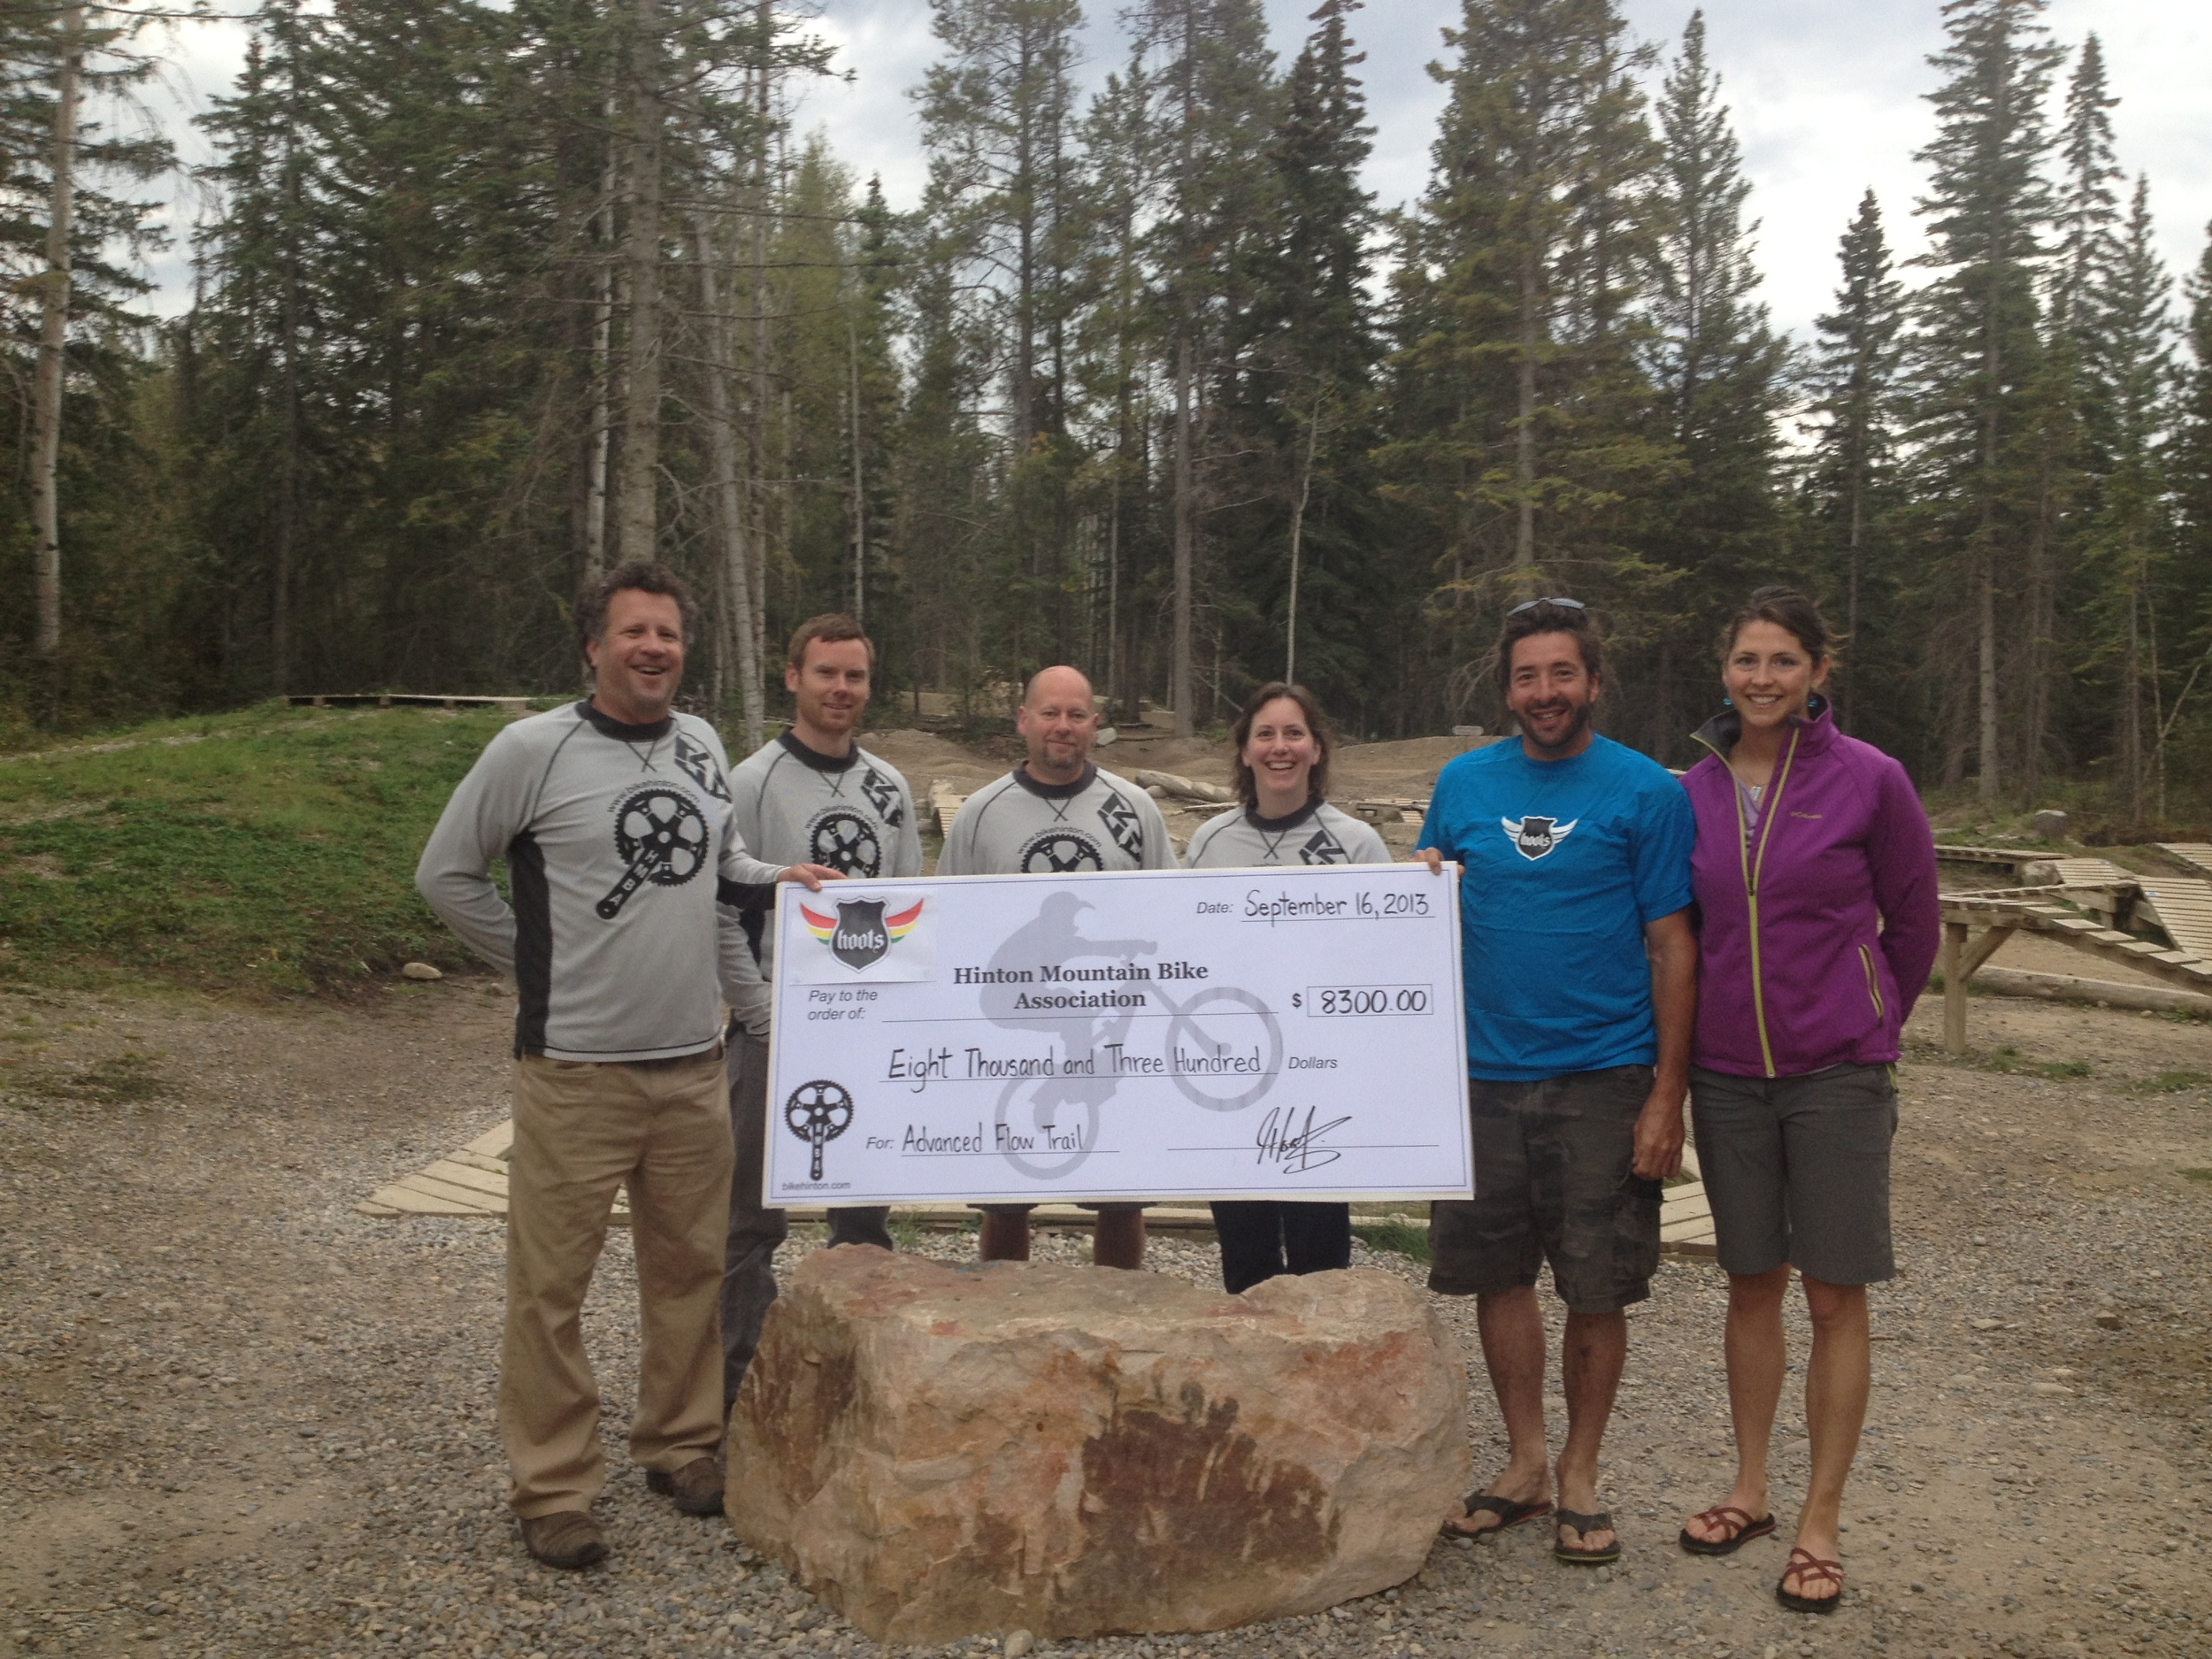 HMBA Receives Advanced Flow Trail Donation from Hoots Inc.